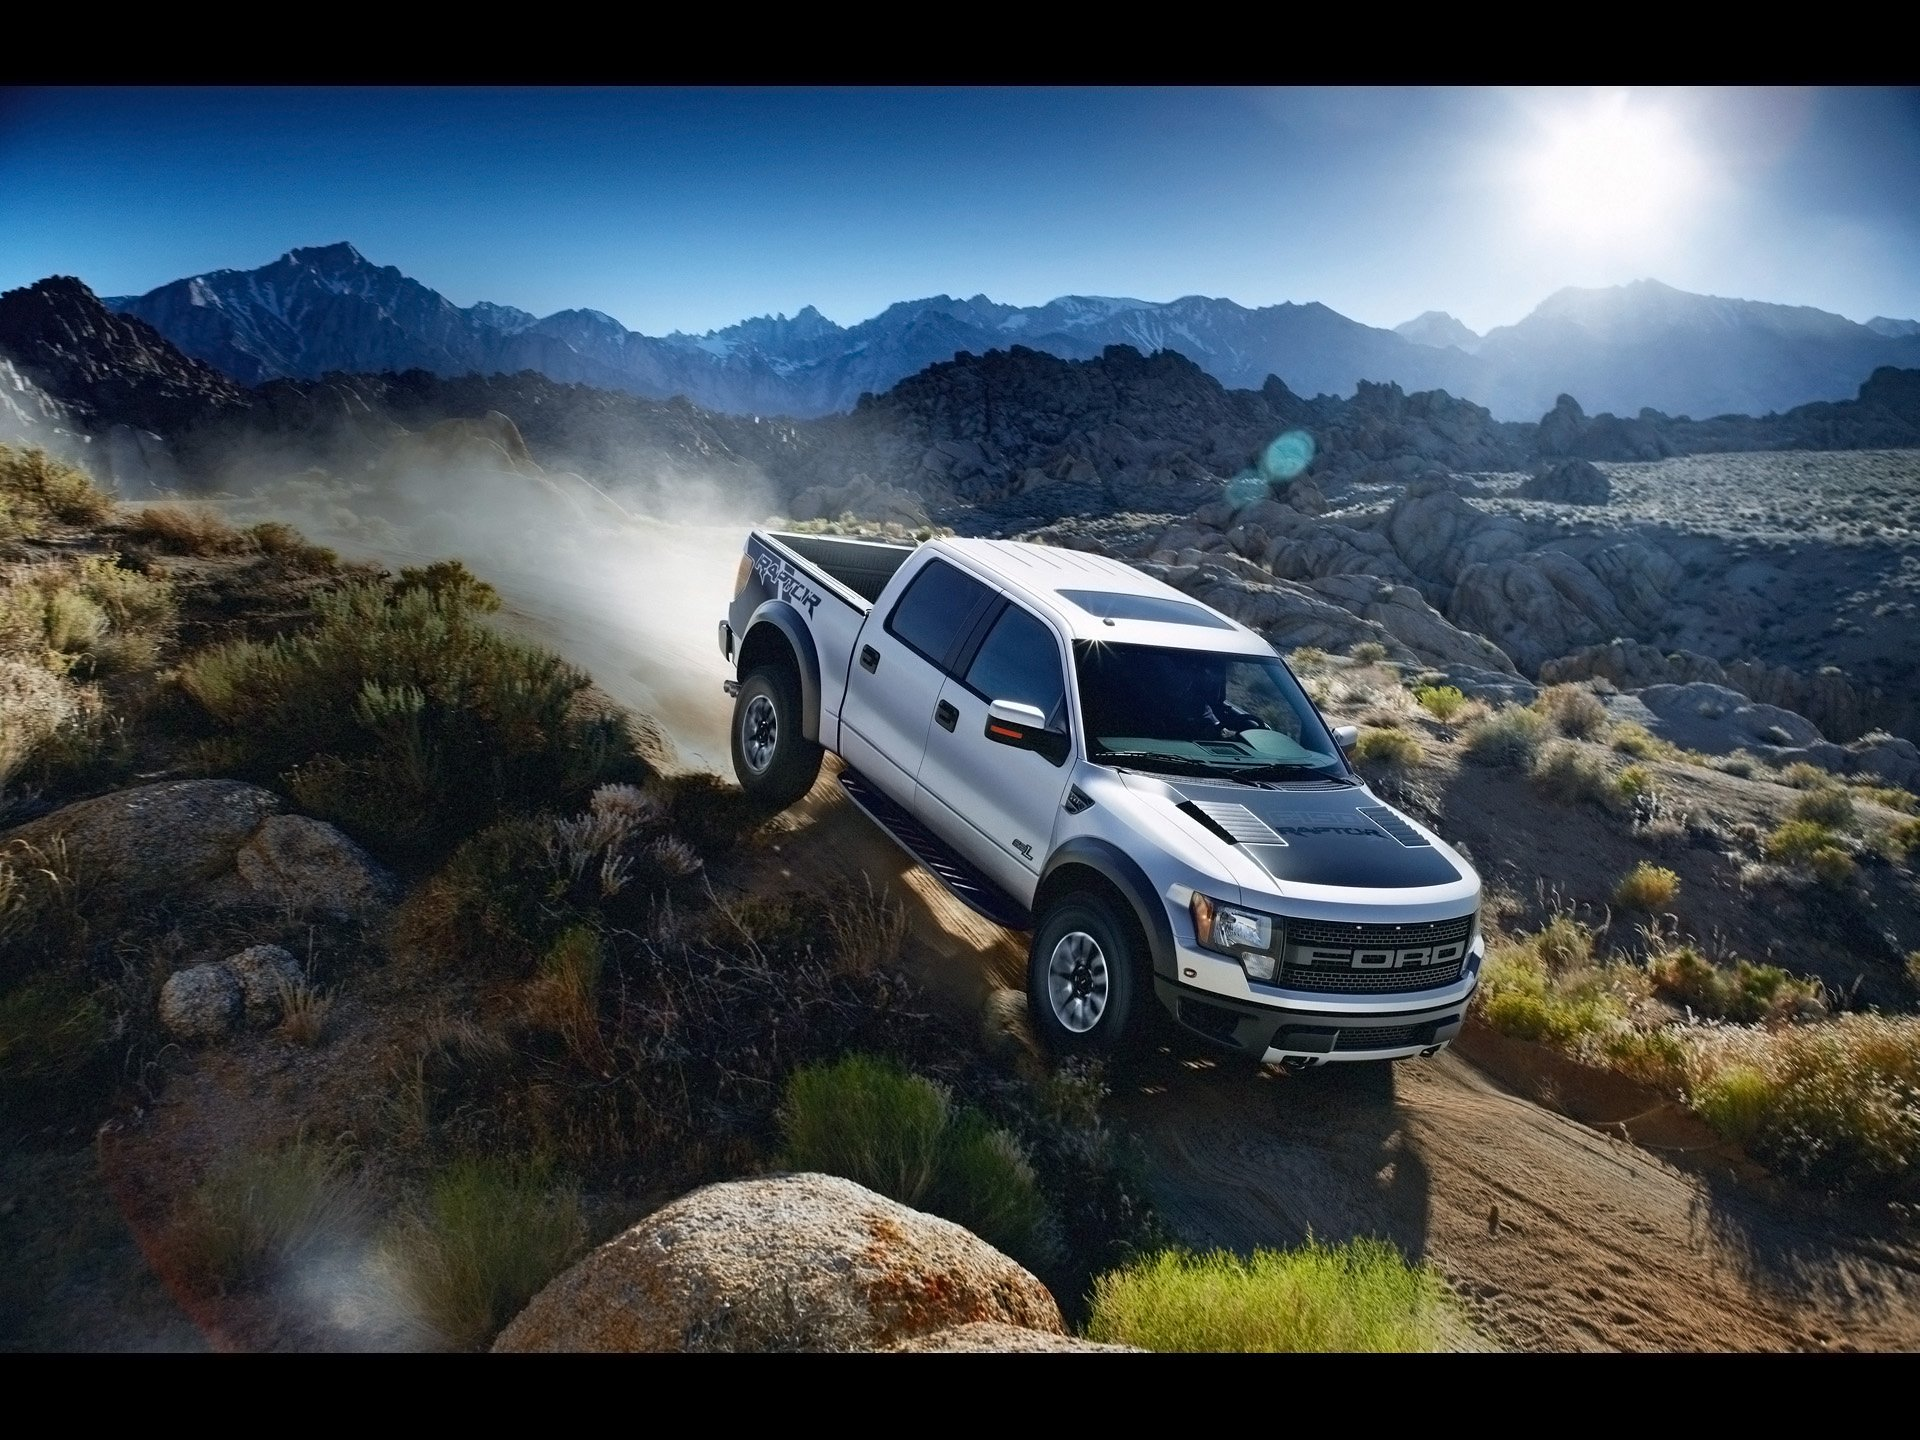 Ford F 150 SVT Raptor 2012 SUV Wallpaper 1920x1440